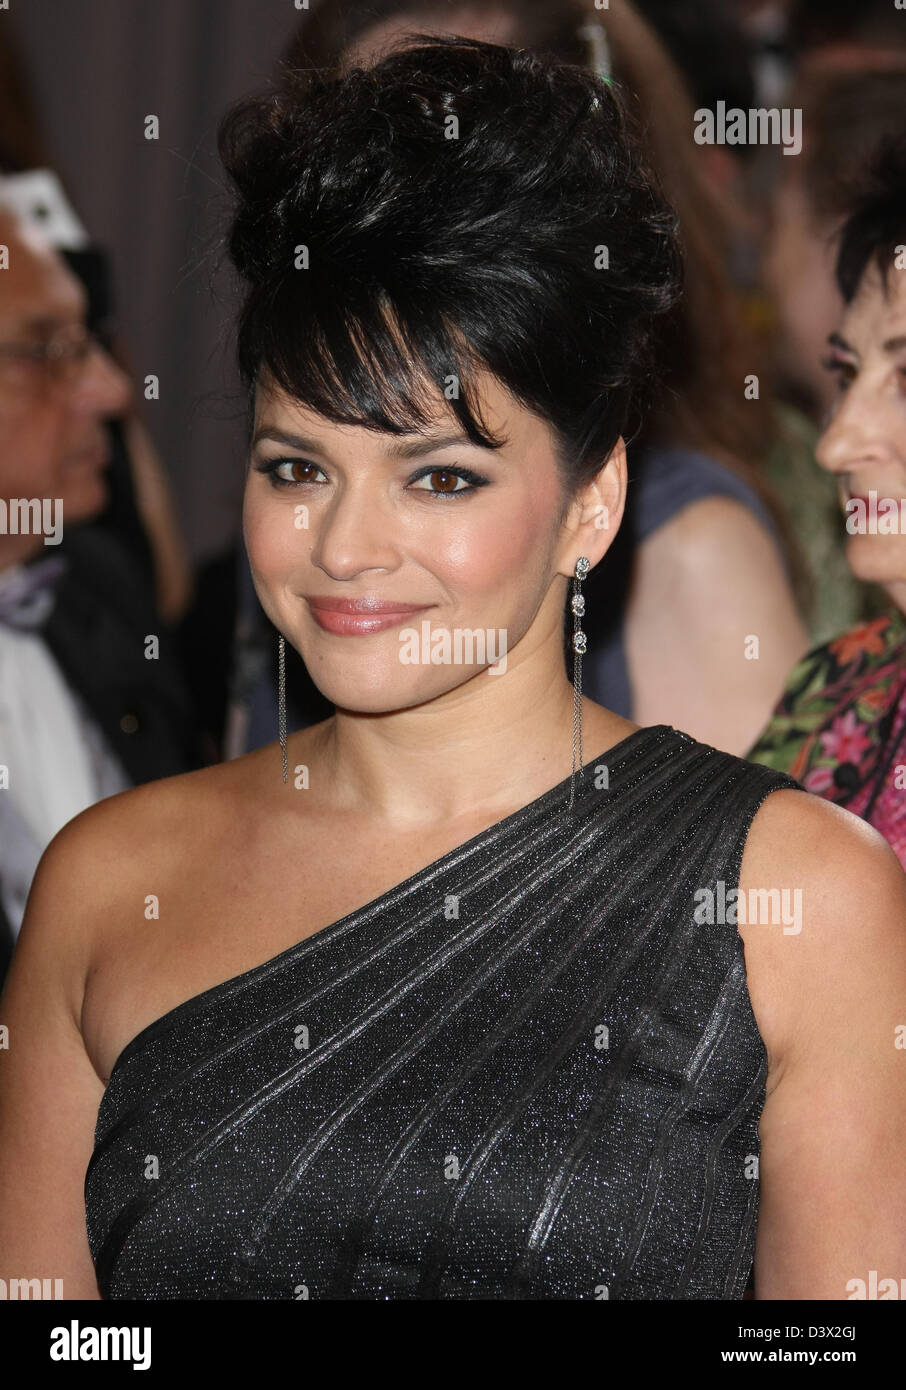 Norah Jones Stock Photos & Norah Jones Stock Images - Alamy